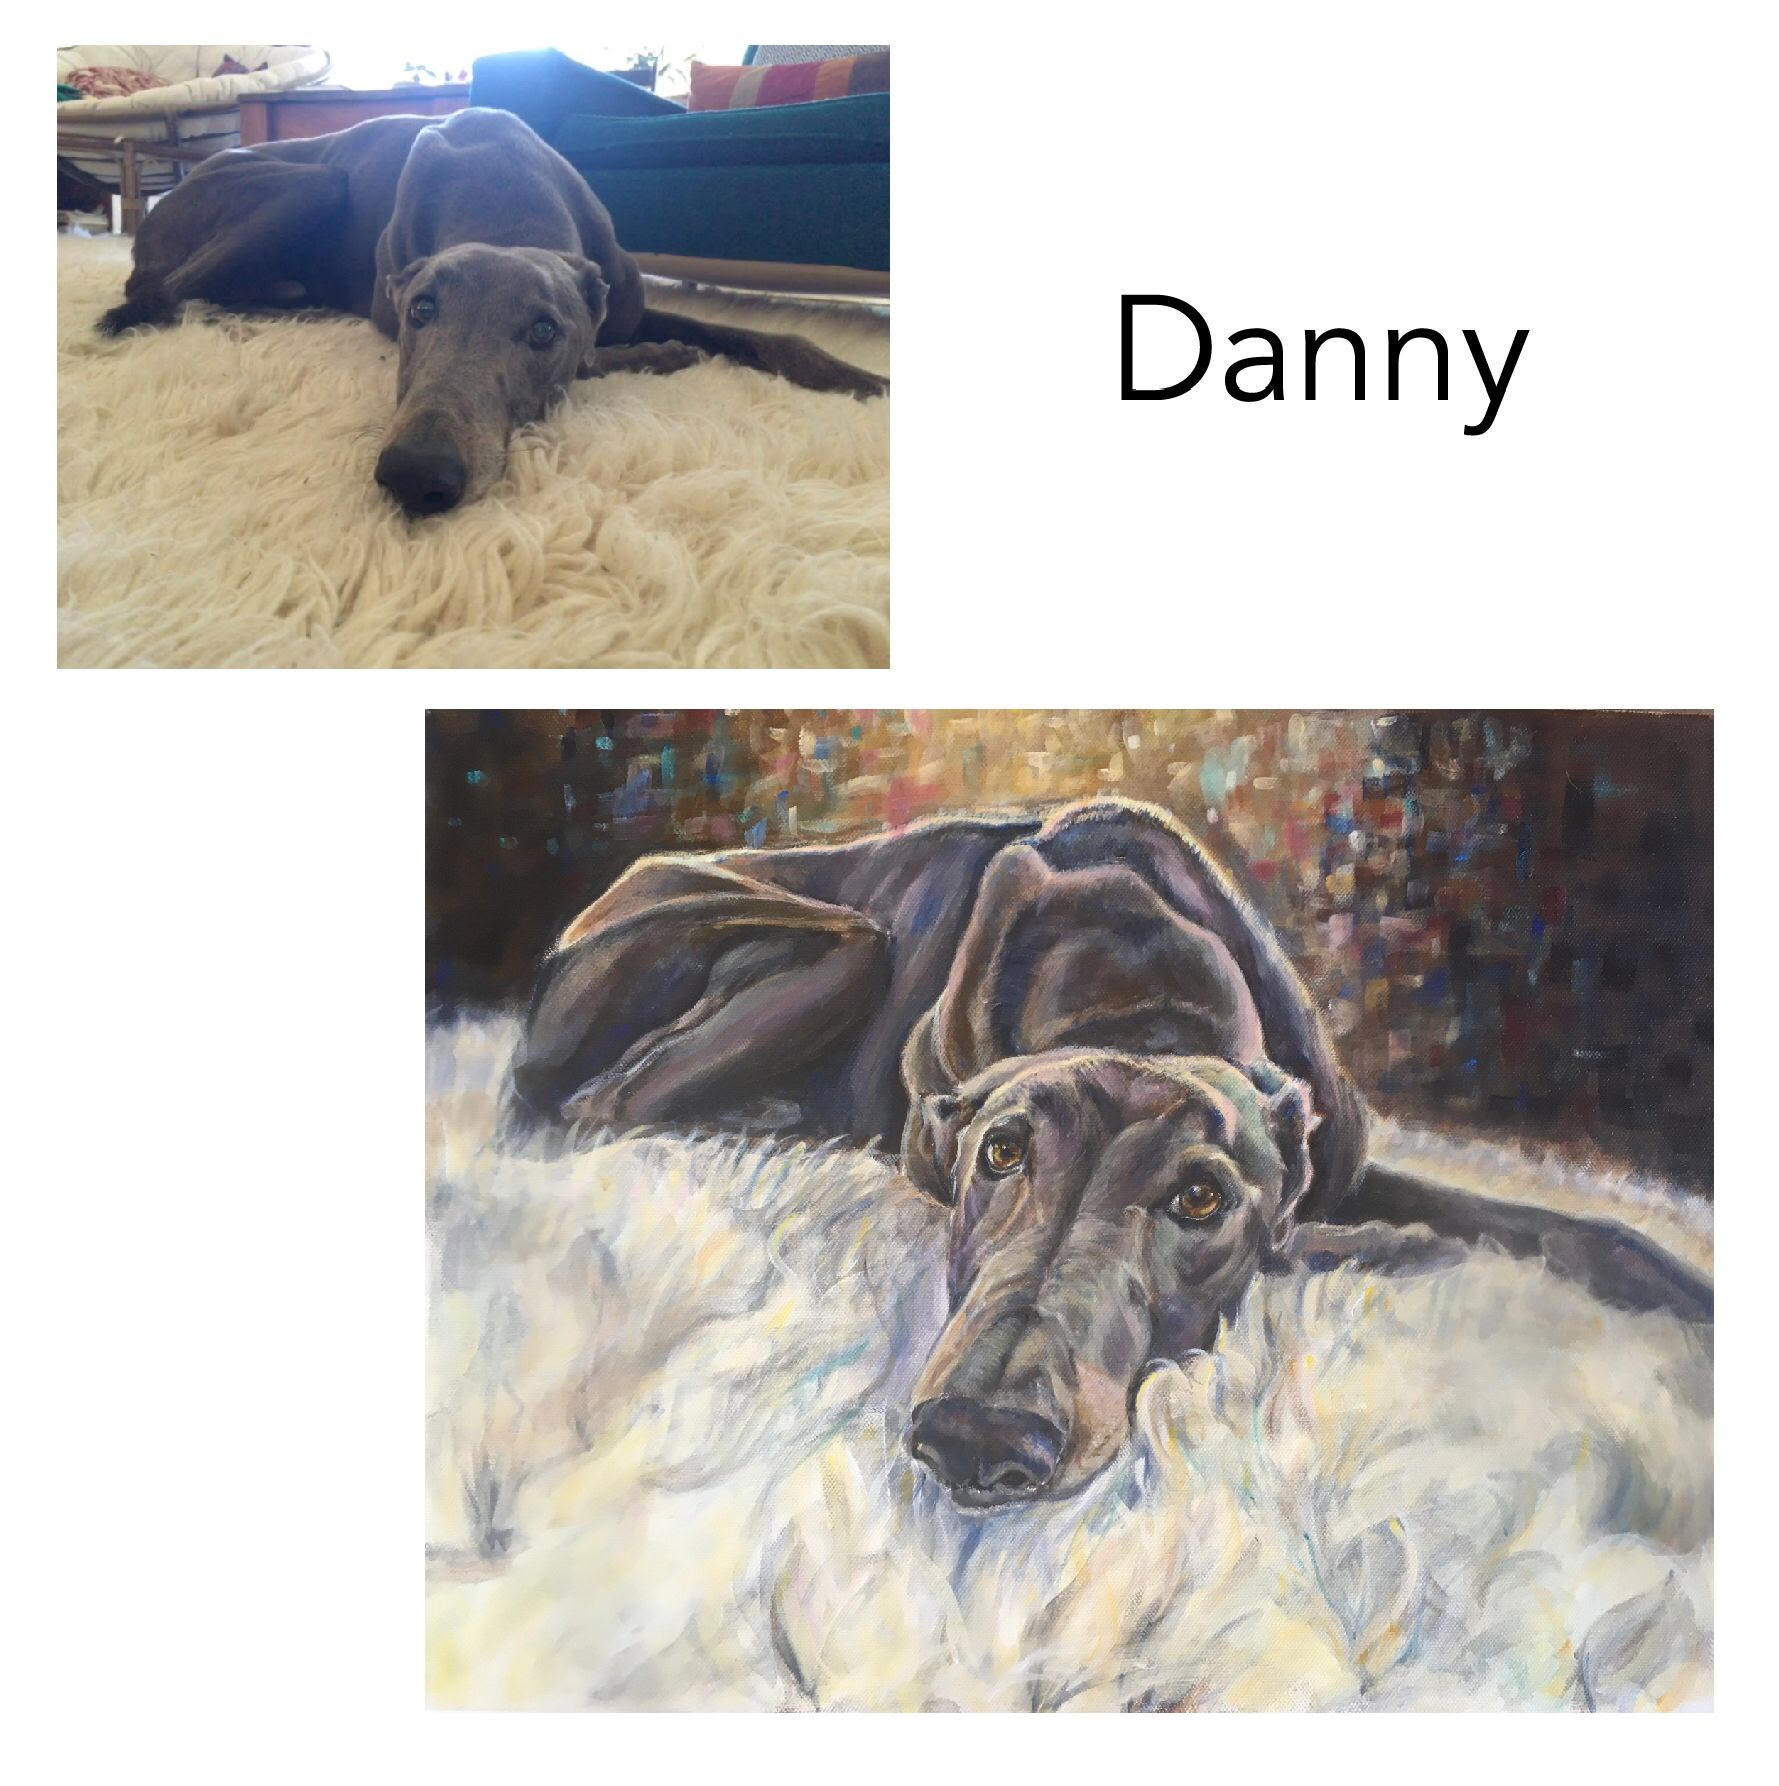 Hand painted custom portrait of Danny the Rescue Greyhound resting on a shaggy rug and gold and brown impressionistic background. Painted from photos by Australian pet portrait artist Opal Pastro